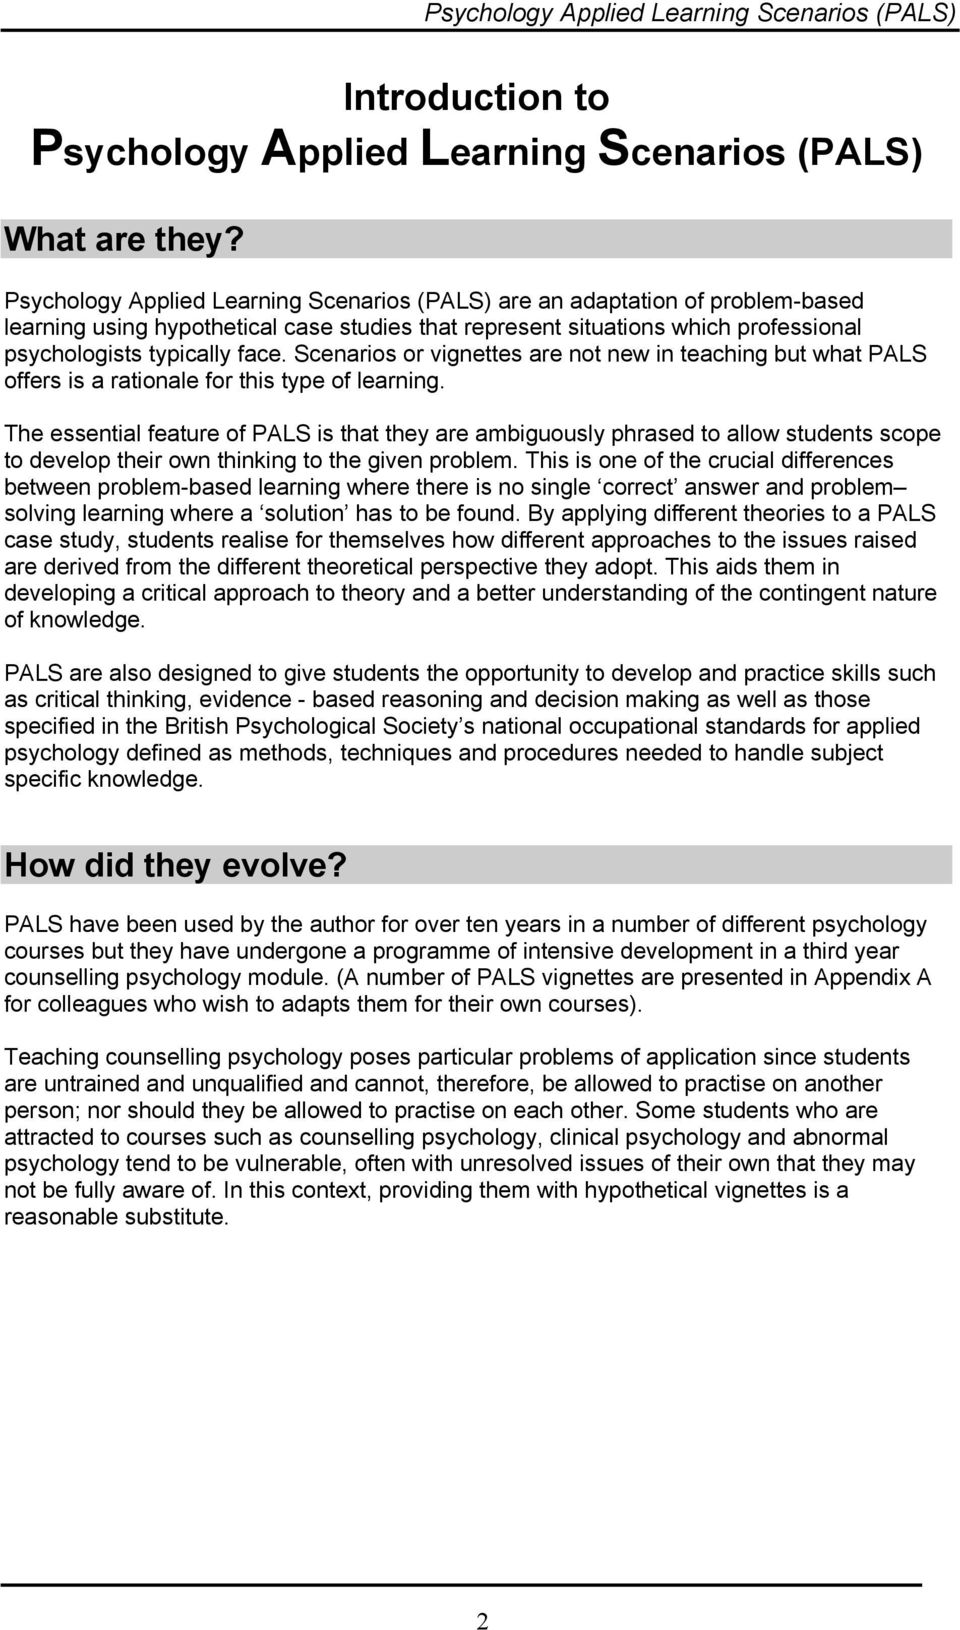 Scenarios or vignettes are not new in teaching but what PALS offers is a rationale for this type of learning.